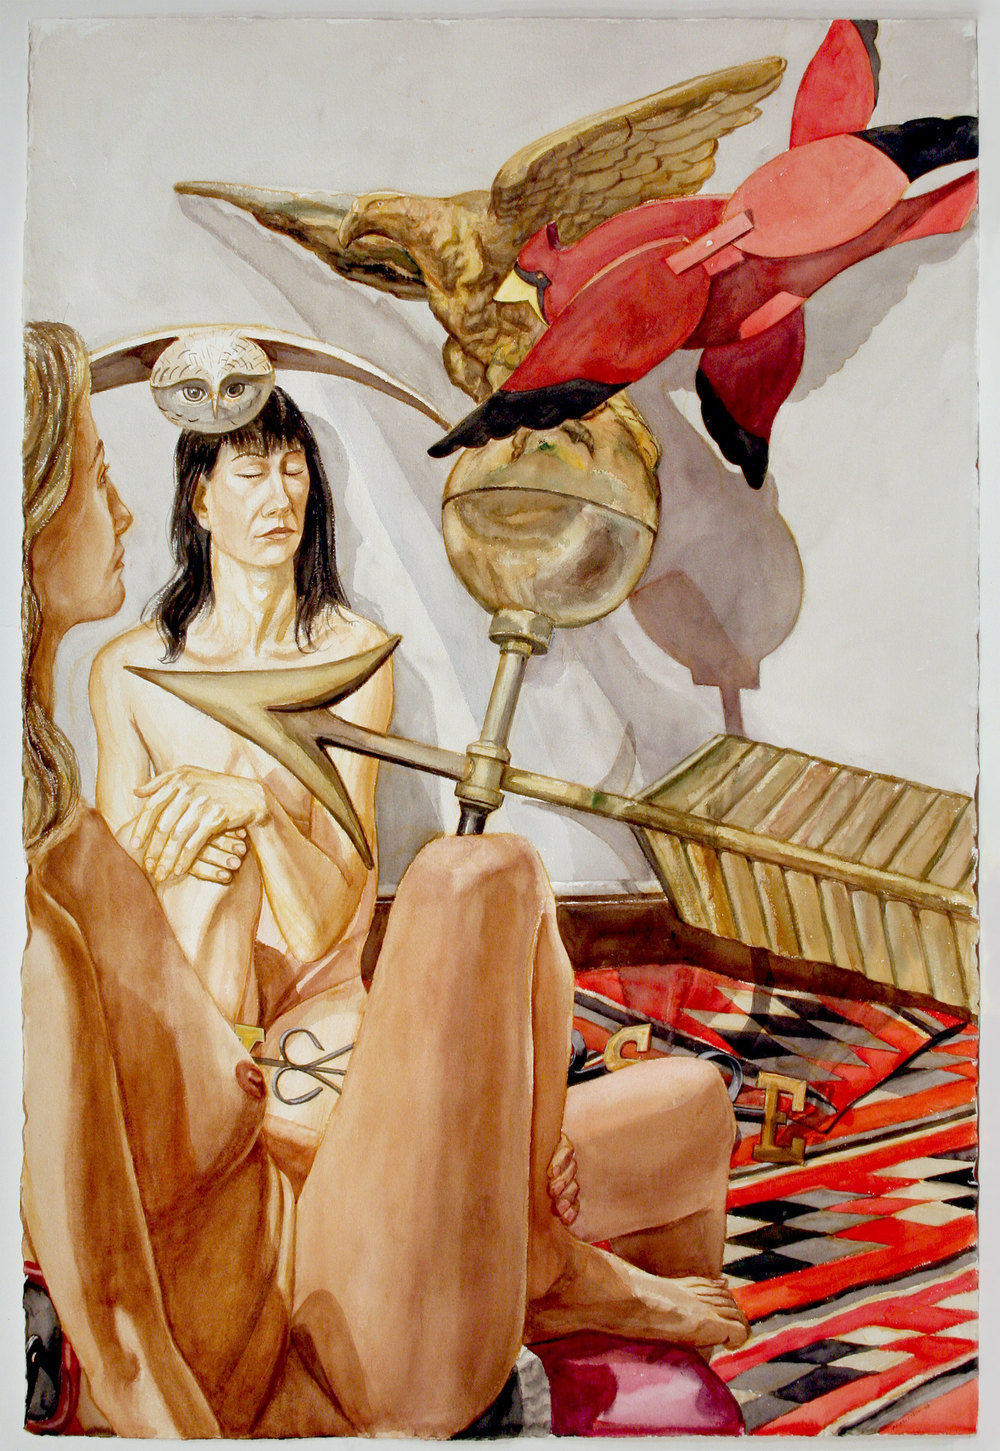 TWO MODELS WITH EAGLE WEATHERVANE, CARDINAL WHIRLIGIG,  2008 Watercolor on paper 59 3/4 x 40 1/4 inches